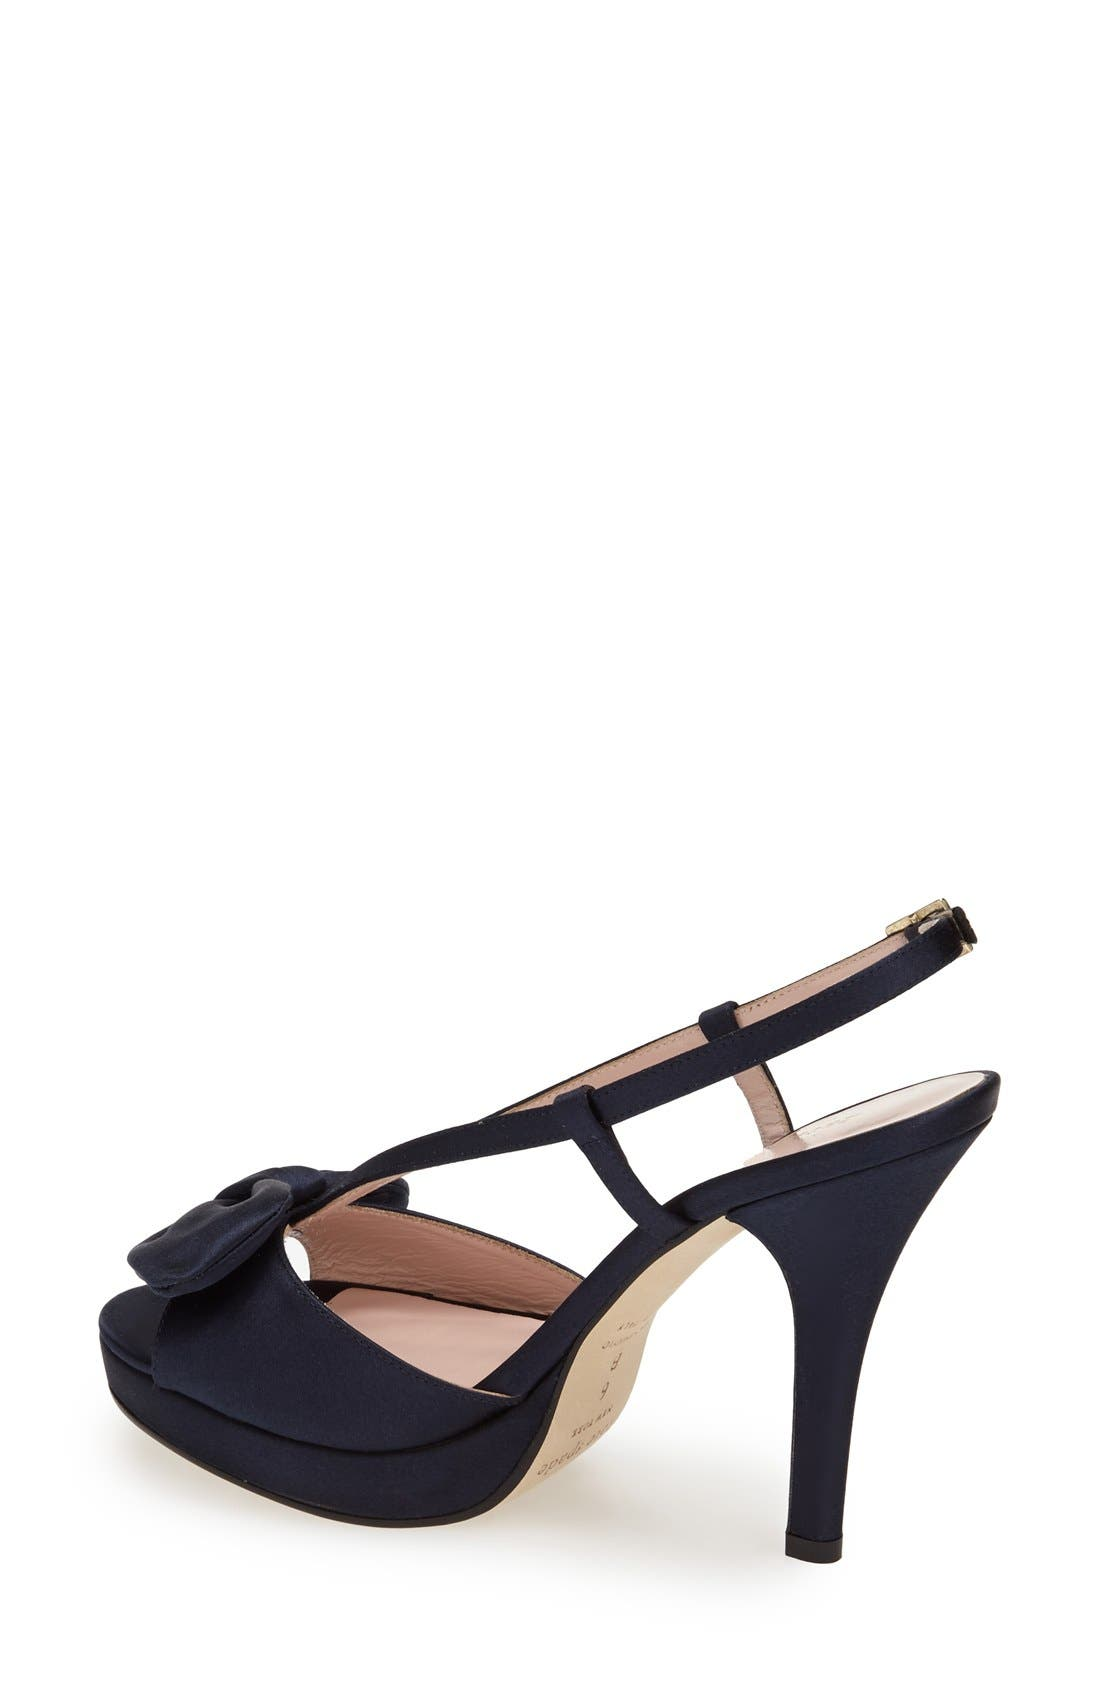 Alternate Image 2  - kate spade new york 'rezza' platform sandal (Women)